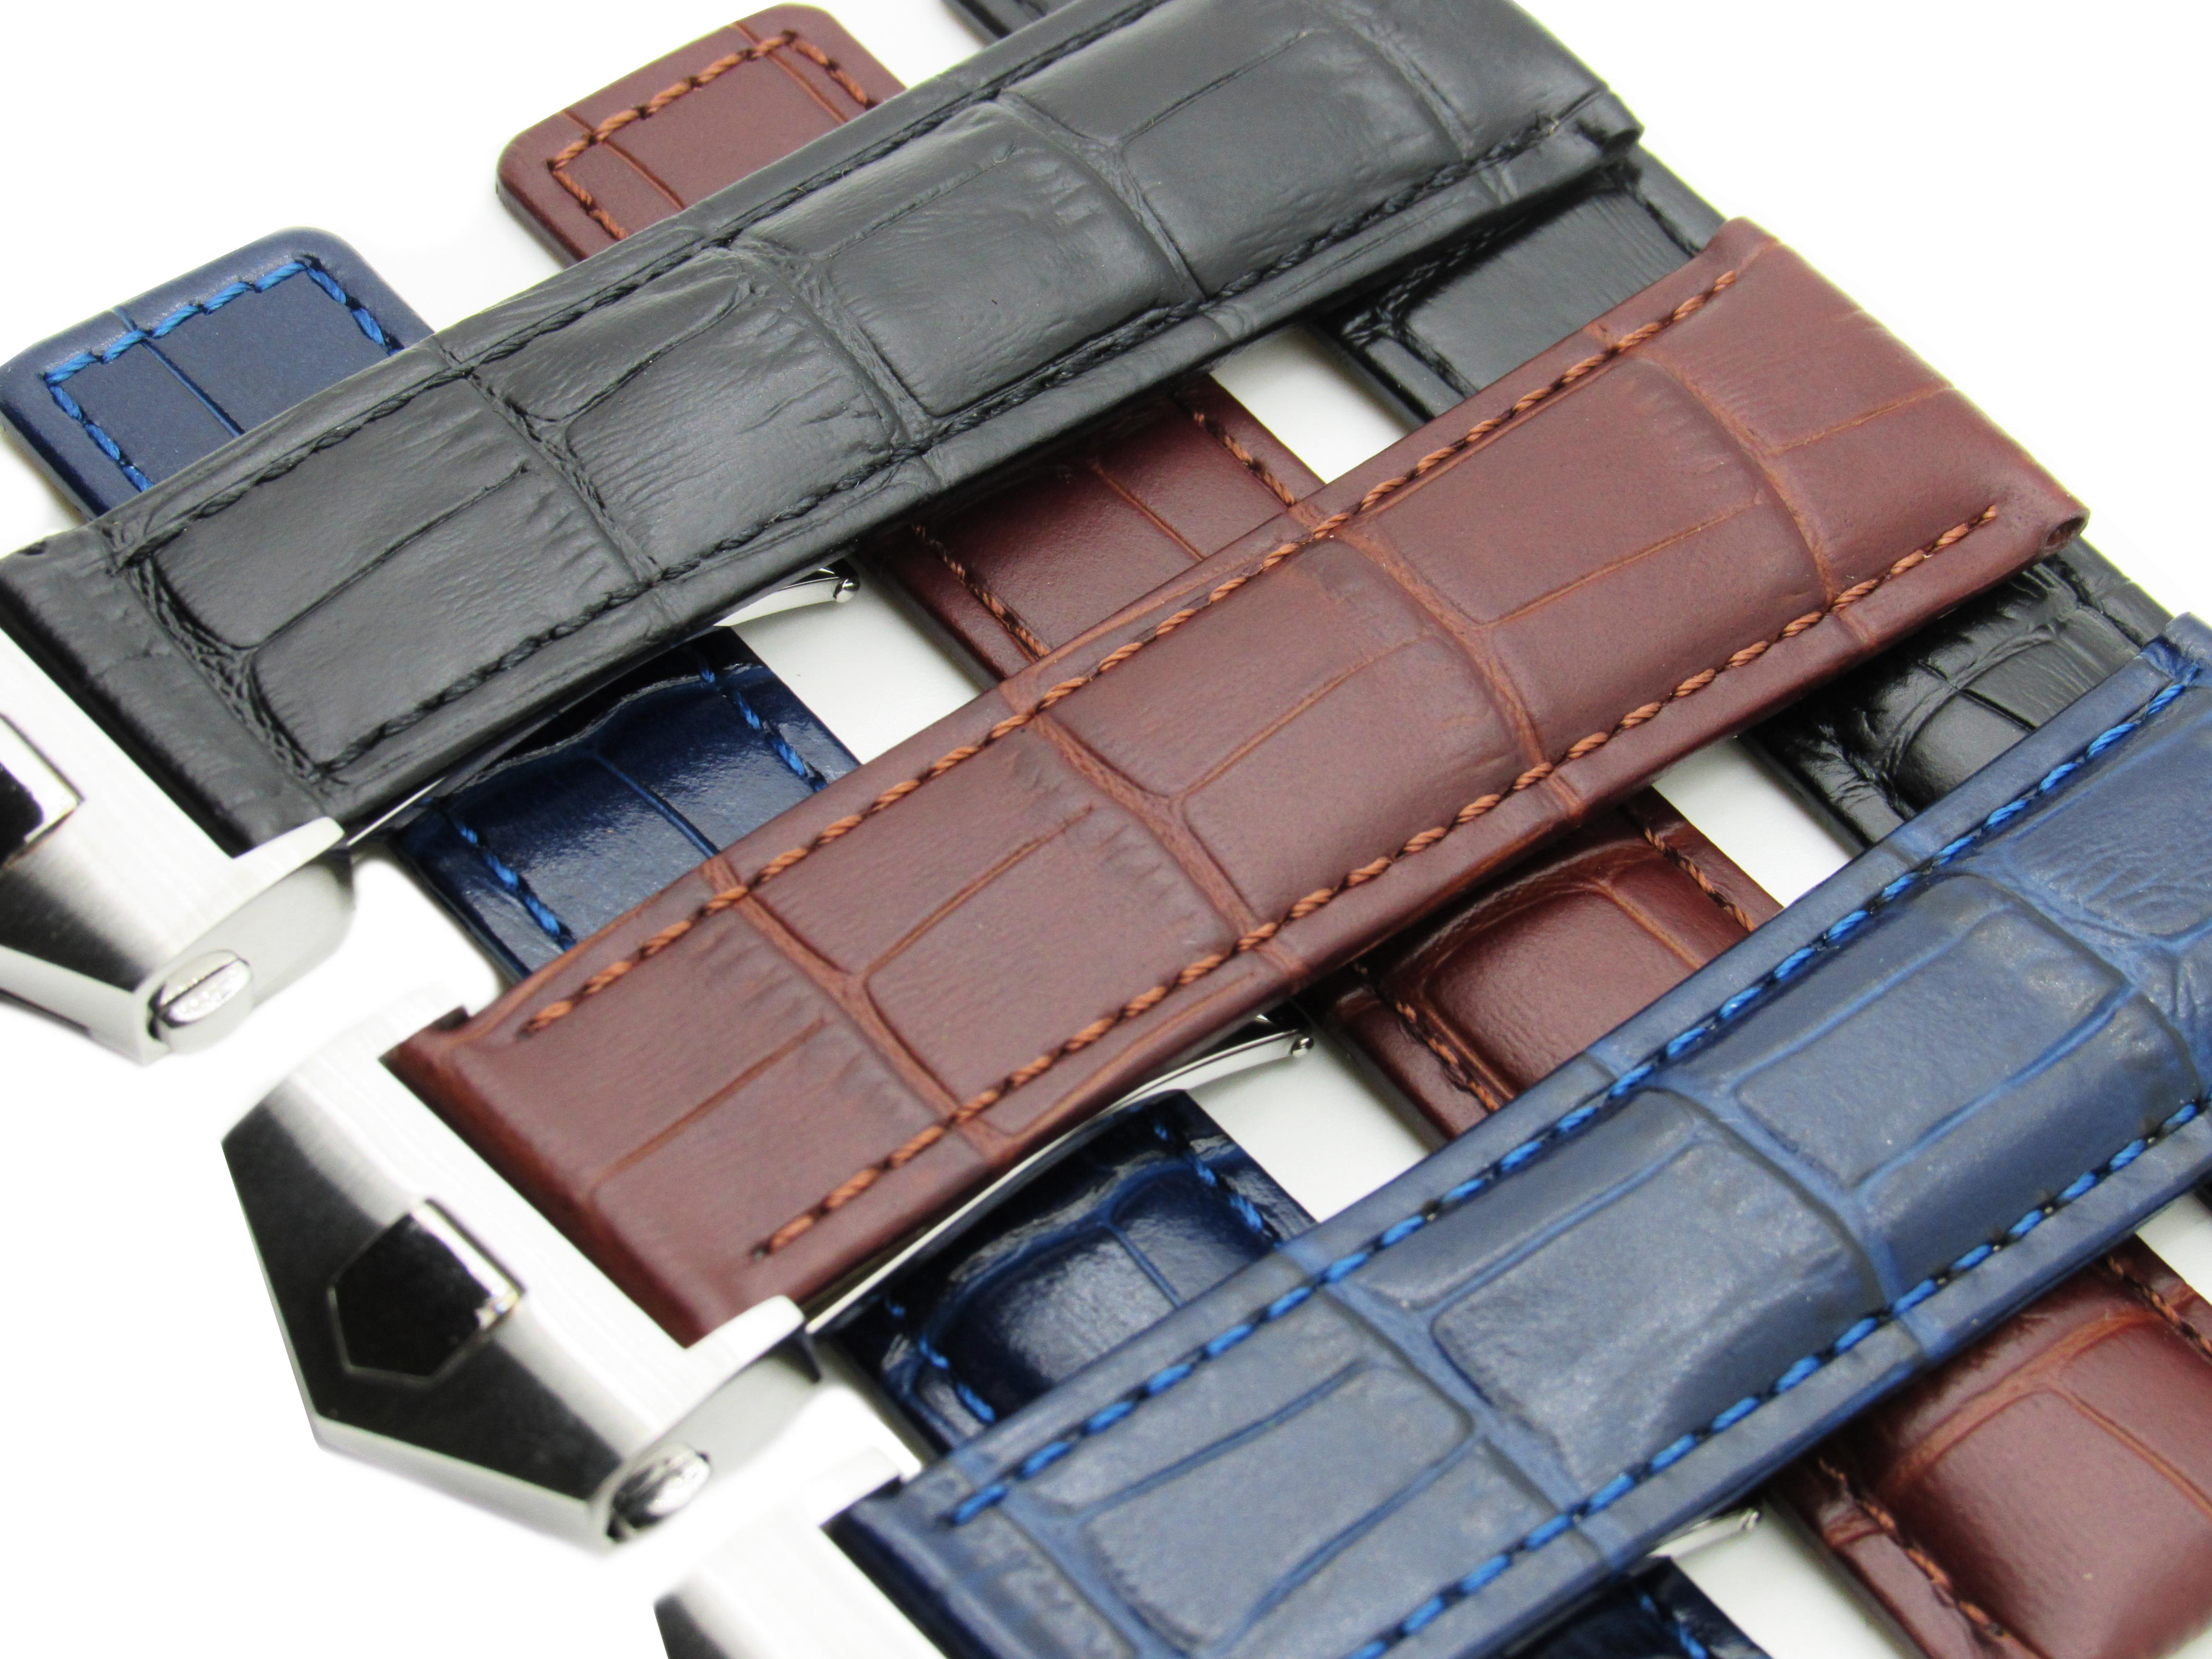 Original Dismay Alligator Embossed Tag Heuer Carrera, Calibre, Monaco Black, Brown, Blue leather watch strap. Deployment buckle clasp